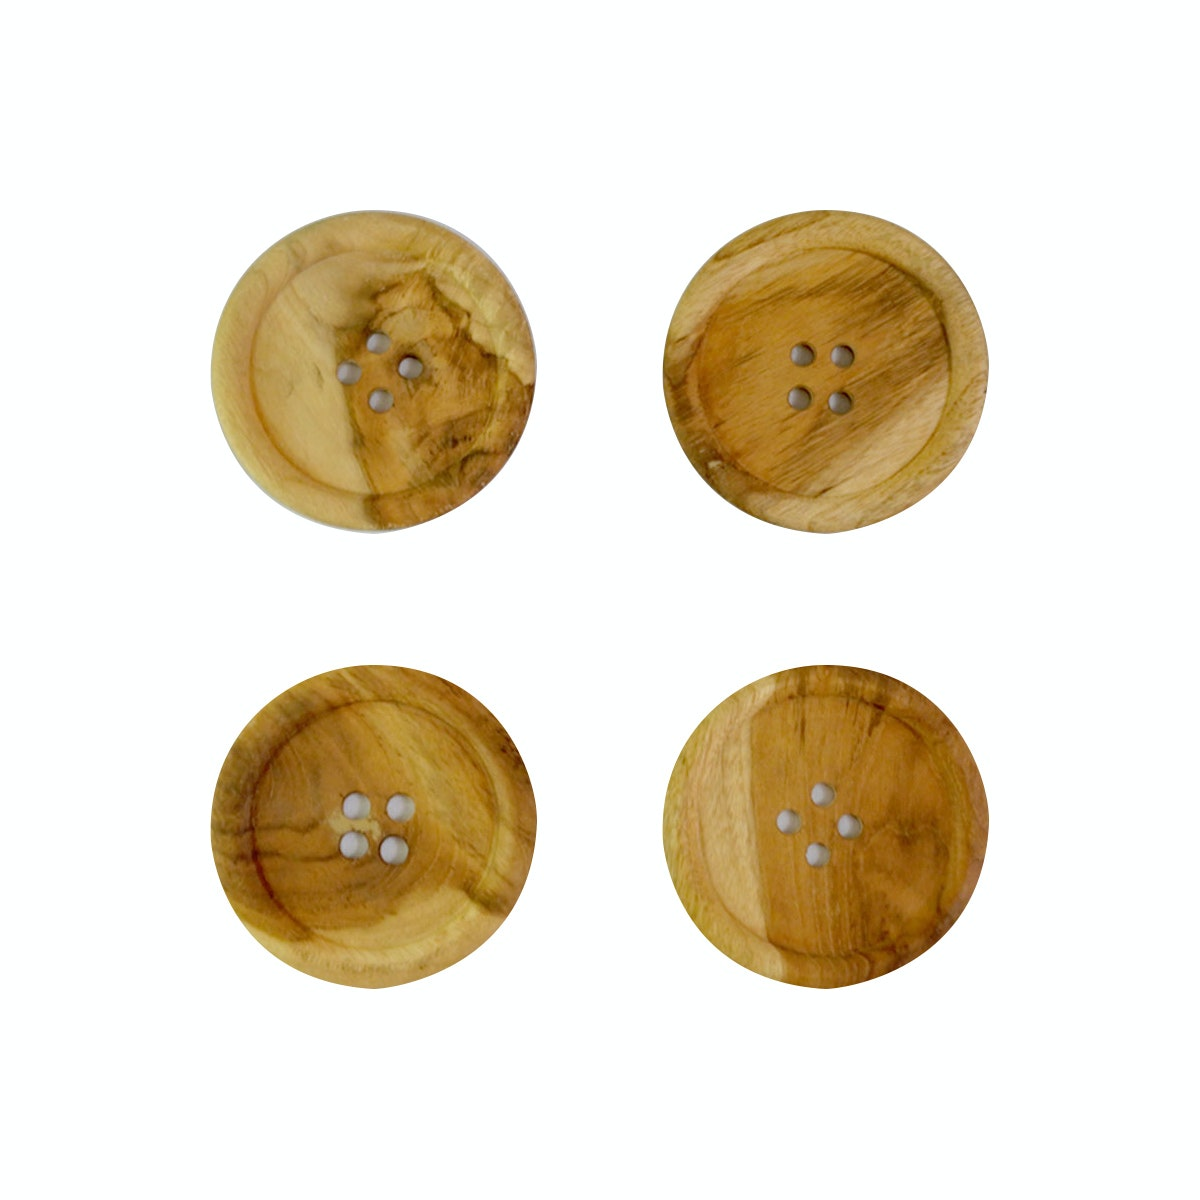 COCOBOLO 4pcs The button wood coasters teak wood